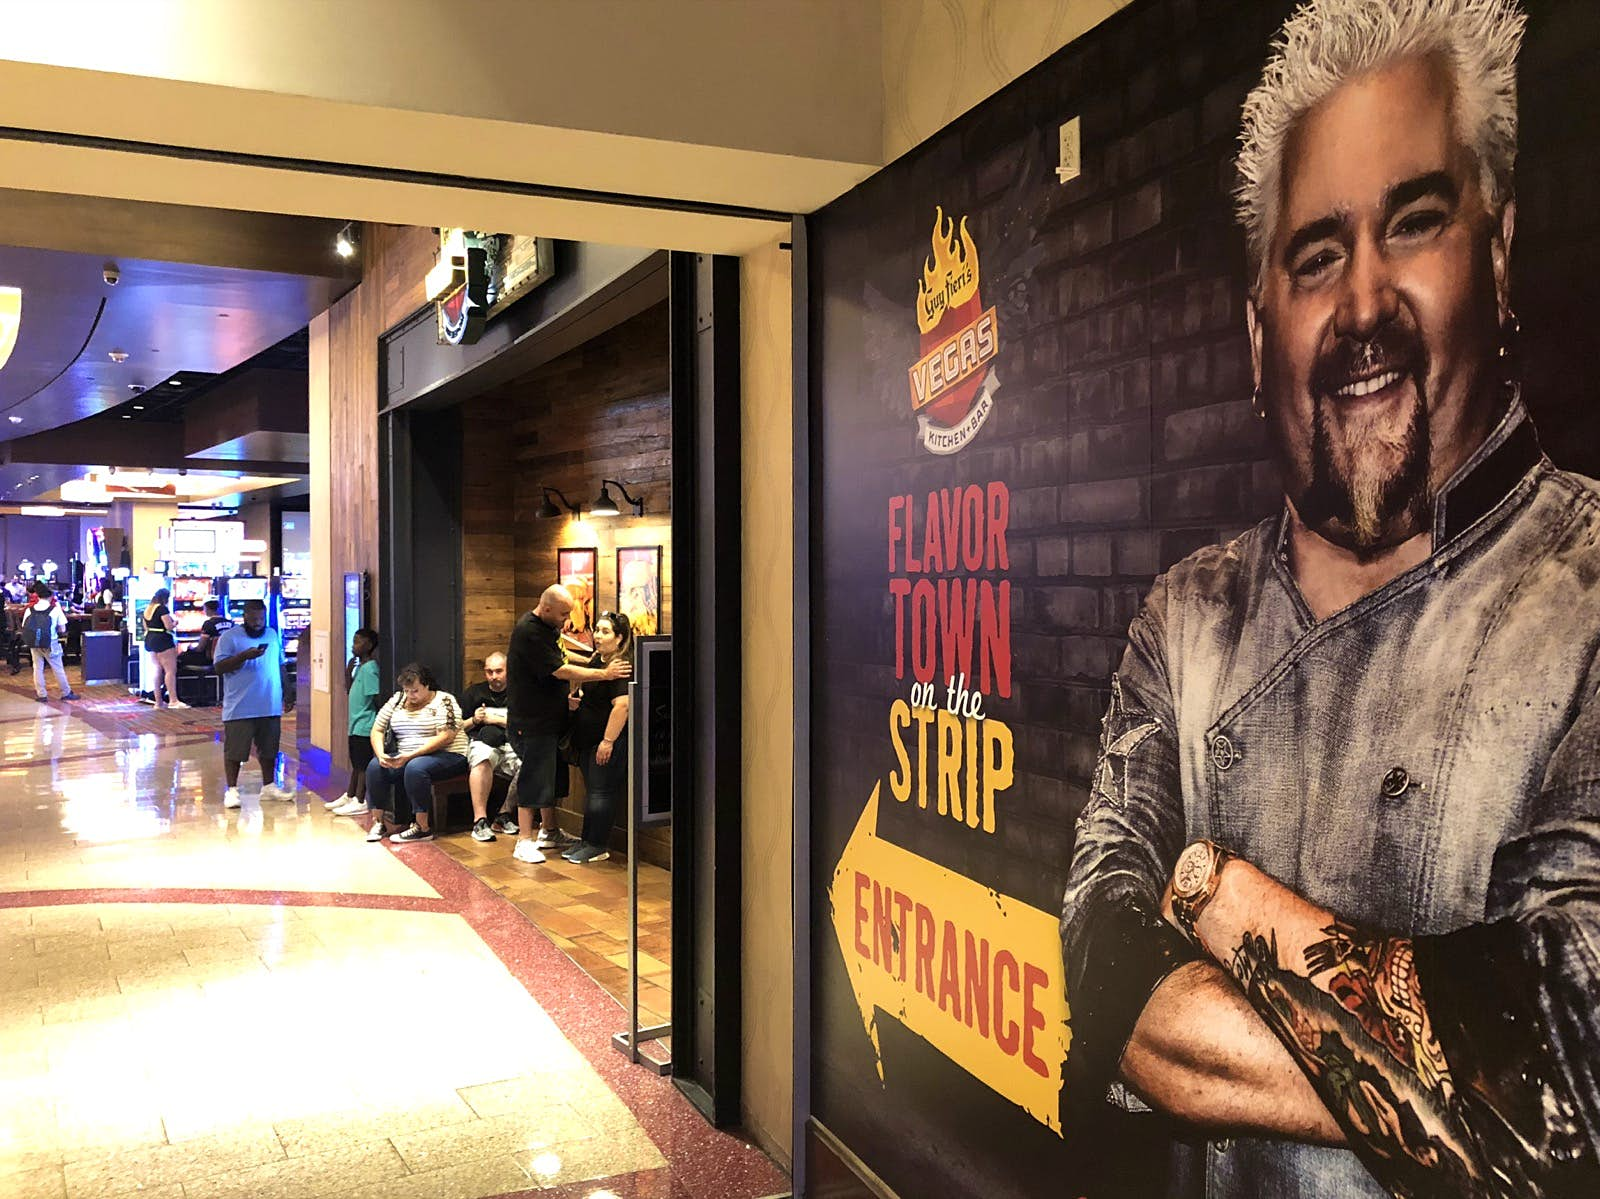 A large mural of celebrity chef Guy Fieri points the way to his restaurant in a Las Vegas casino